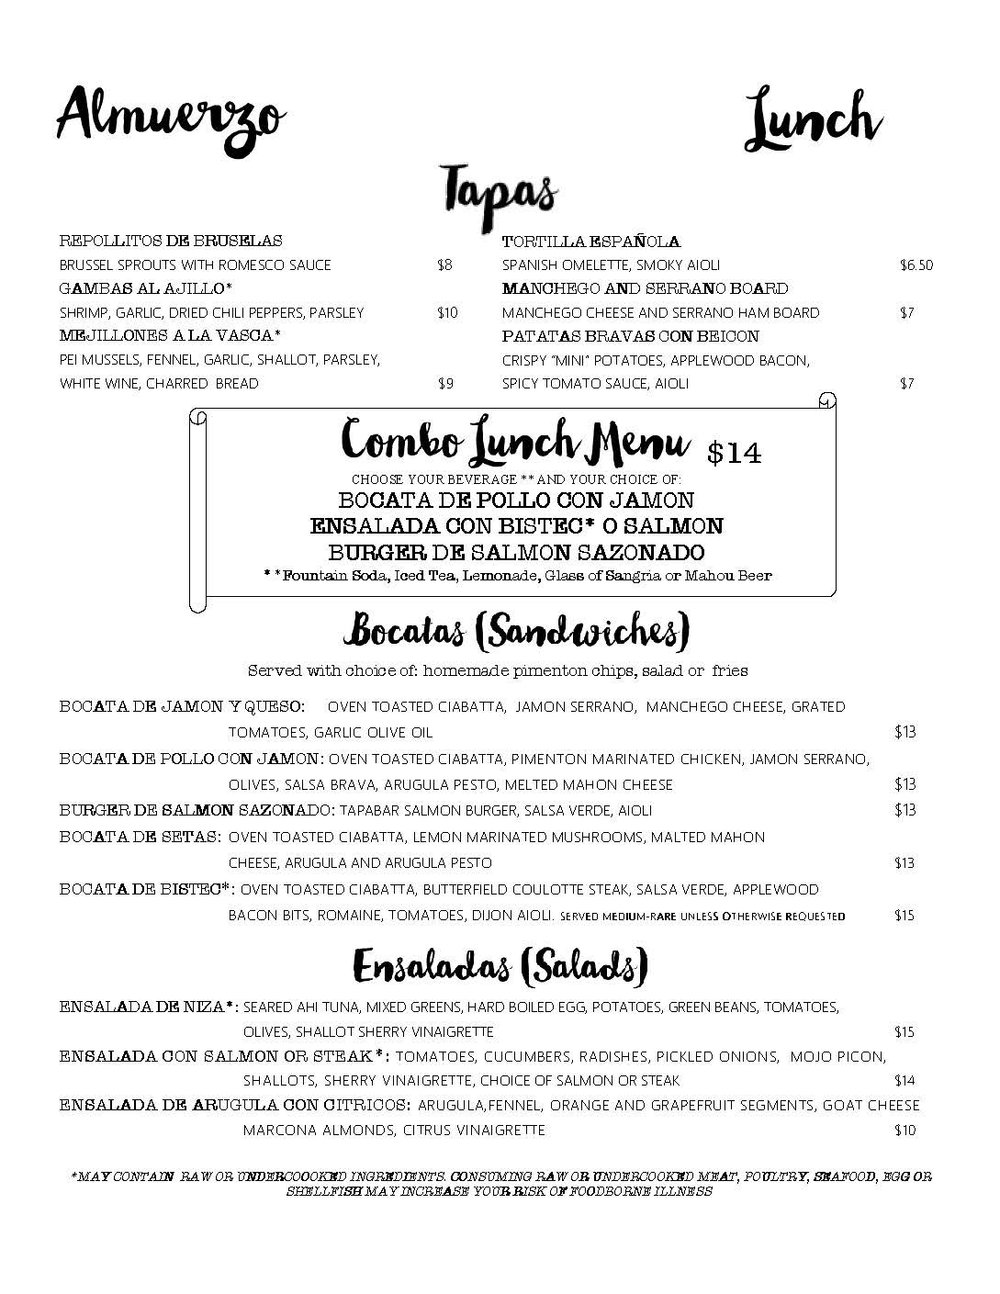 LUNCH MENU 10.31.17.jpg